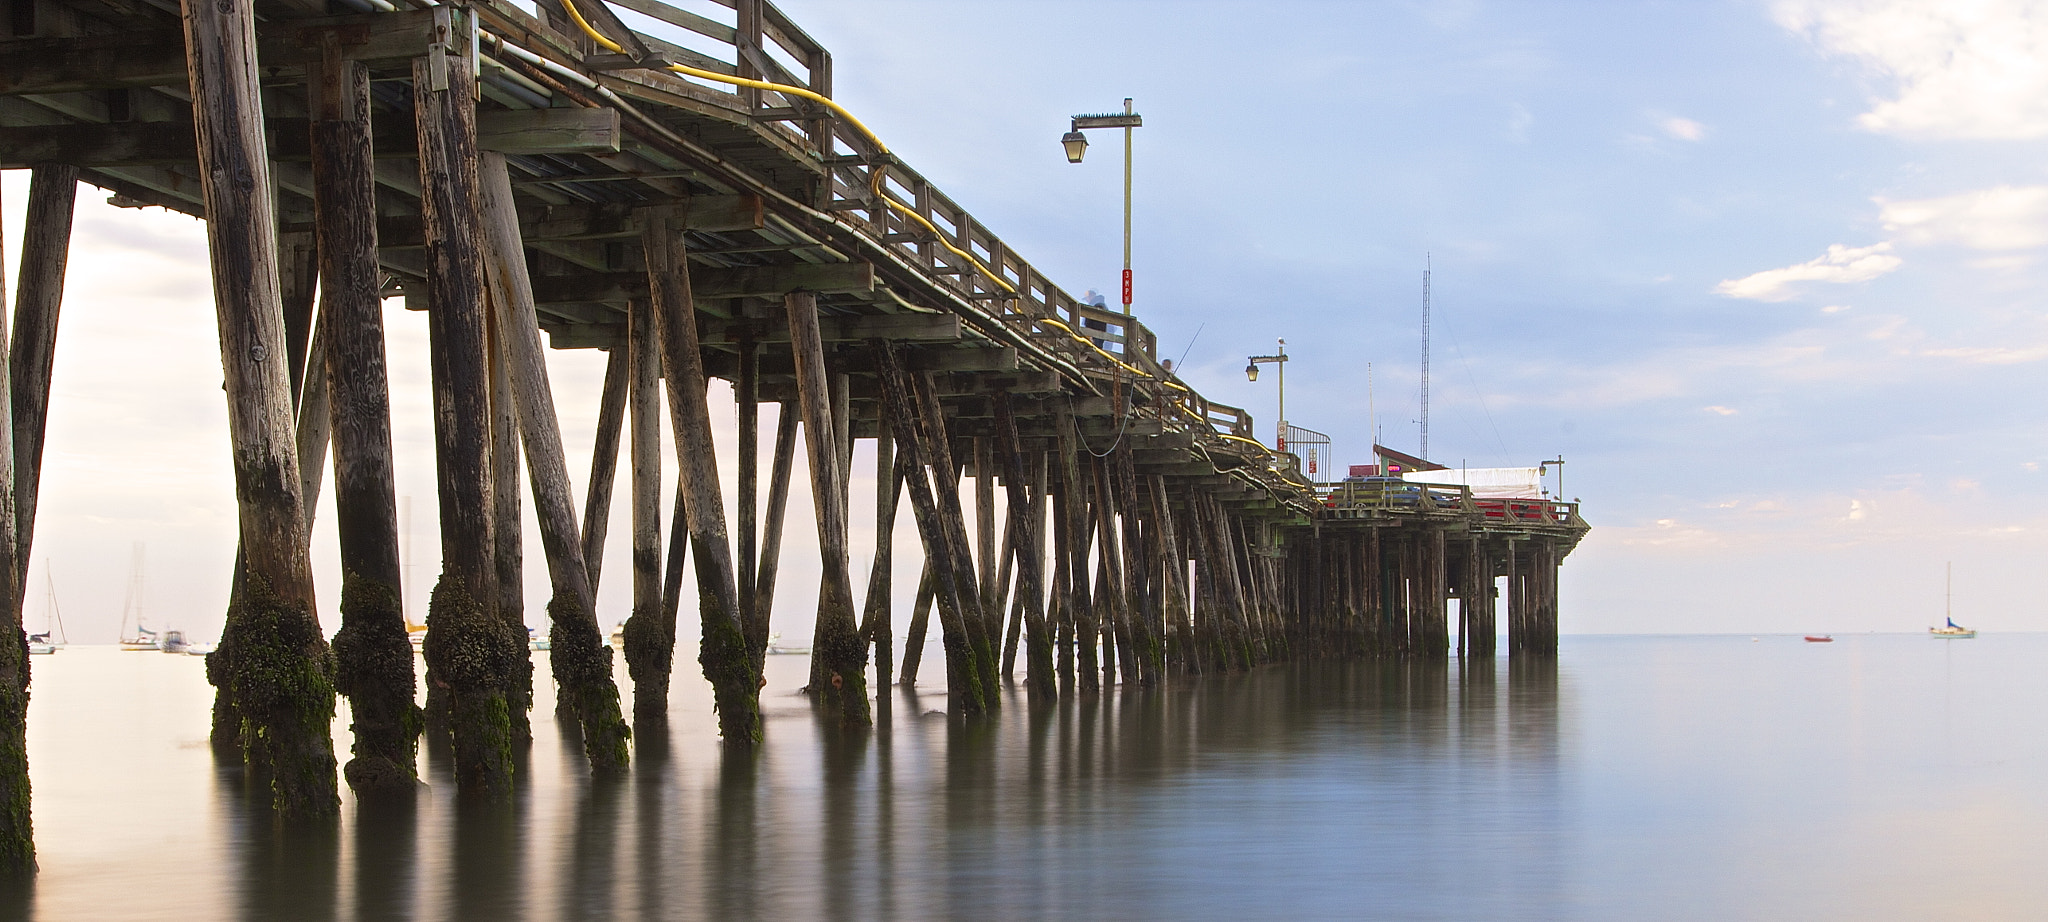 Photograph Capitola, CA by Mazen Ahml on 500px